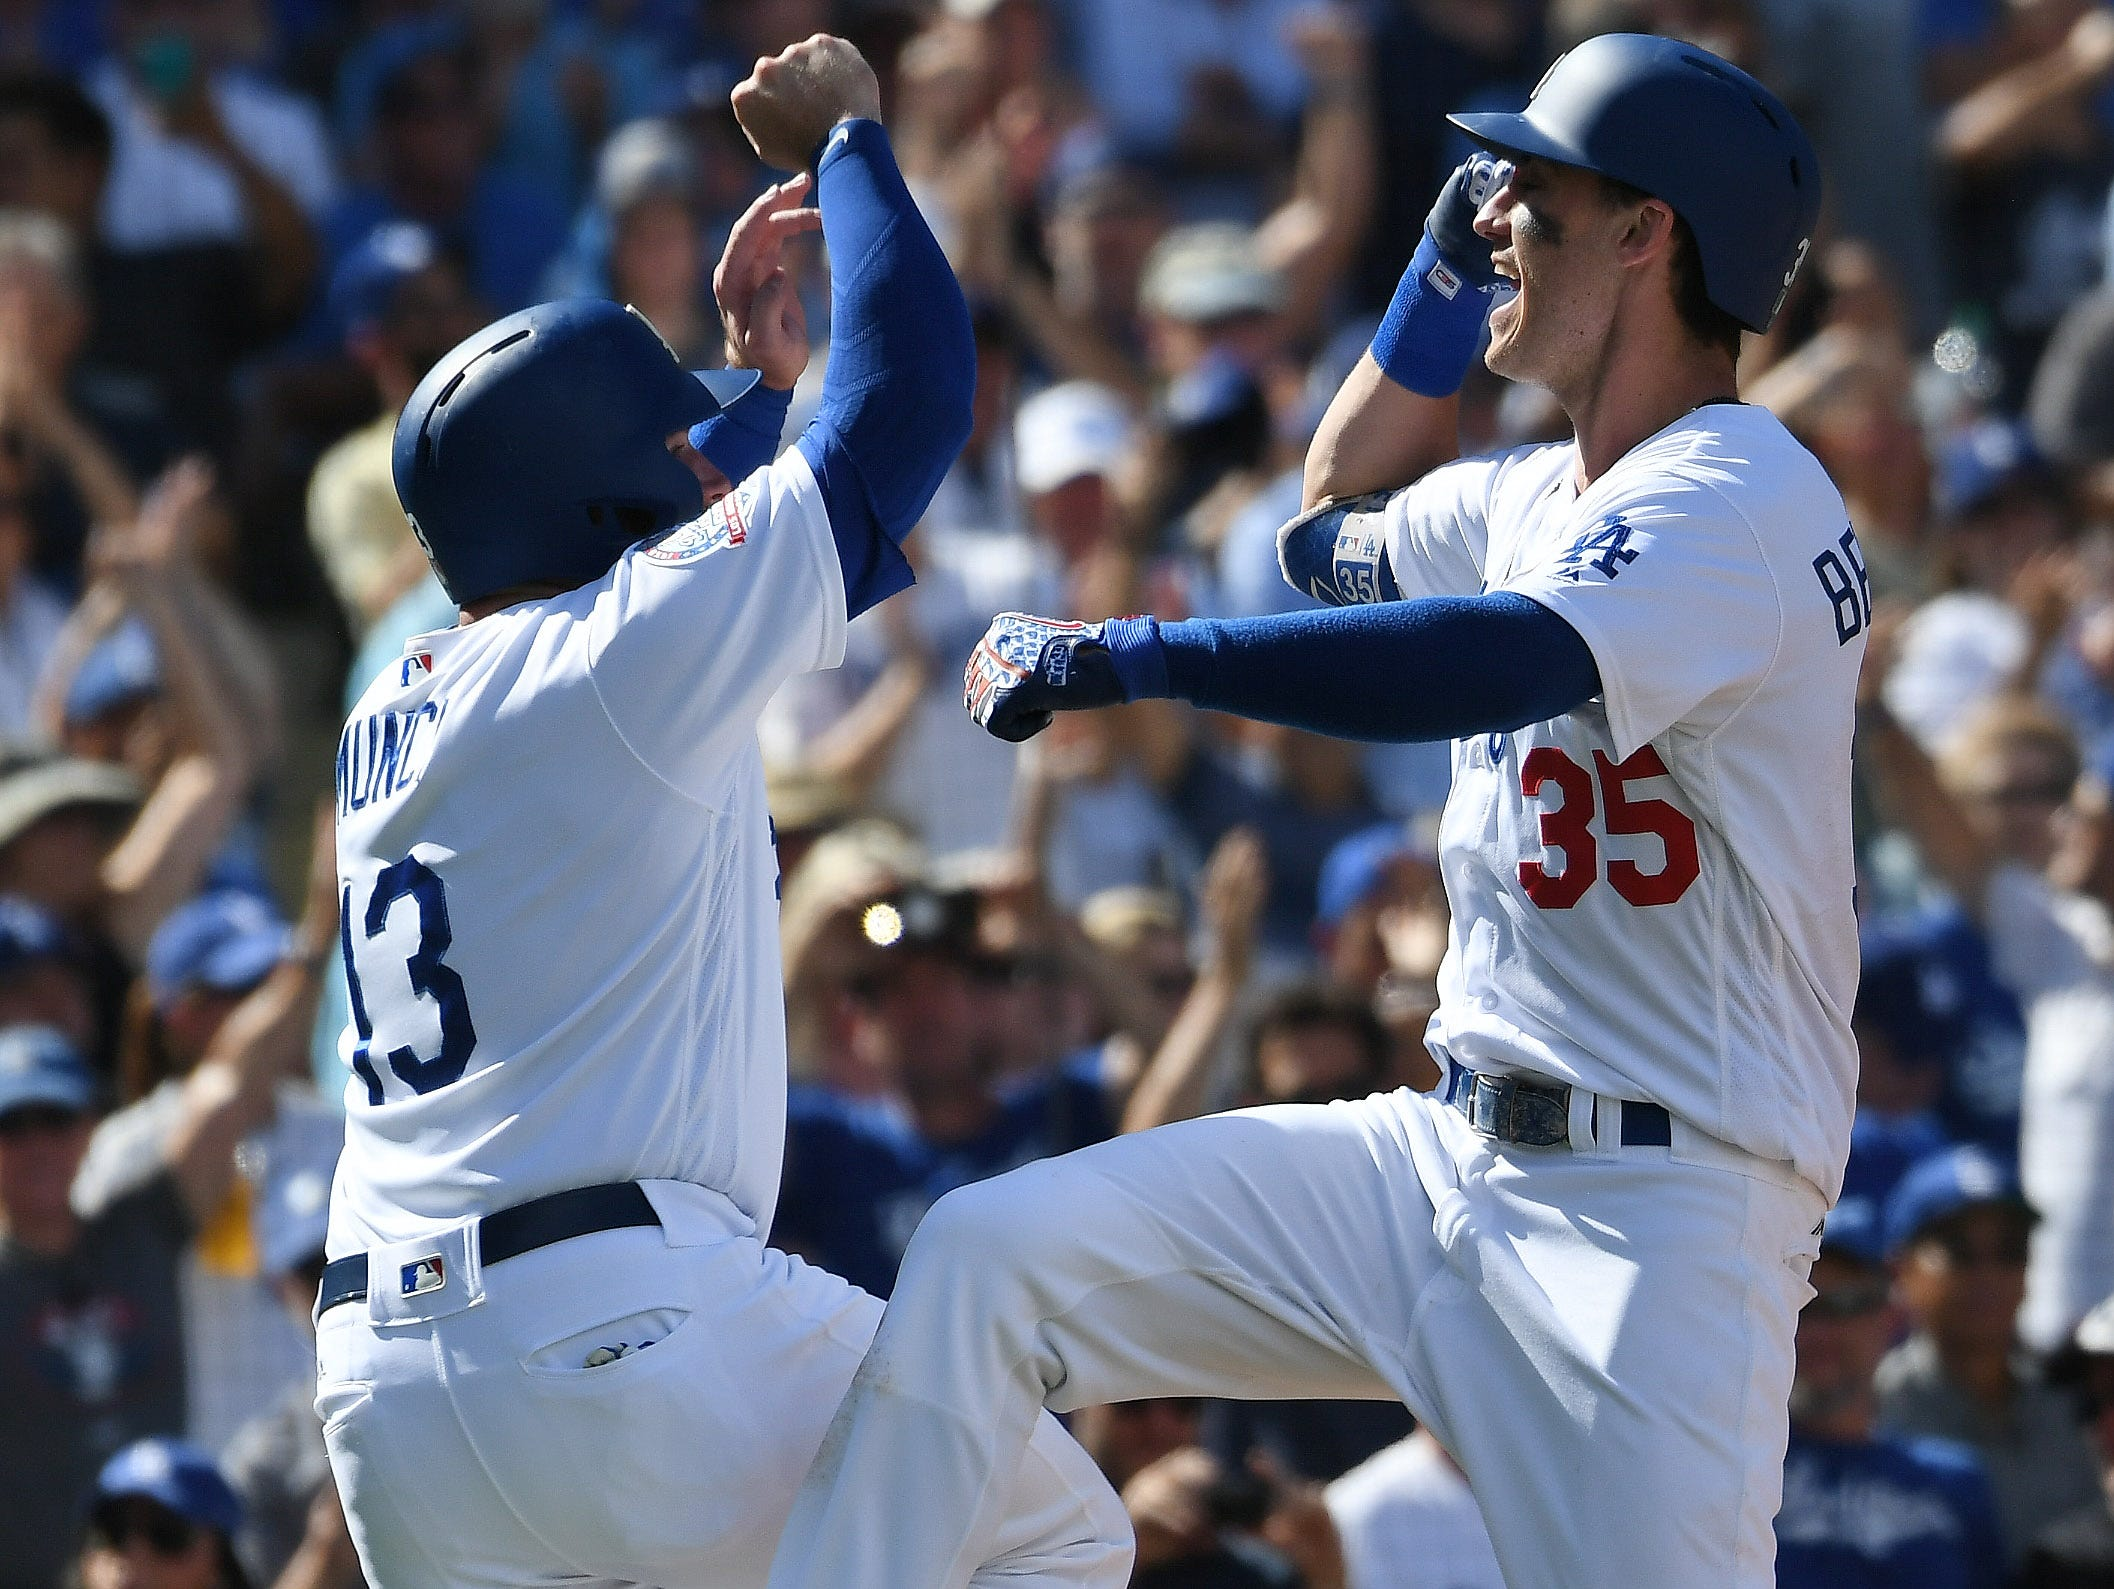 Cody Bellinger celebrates his two-run homer with teammate Max Muncy.